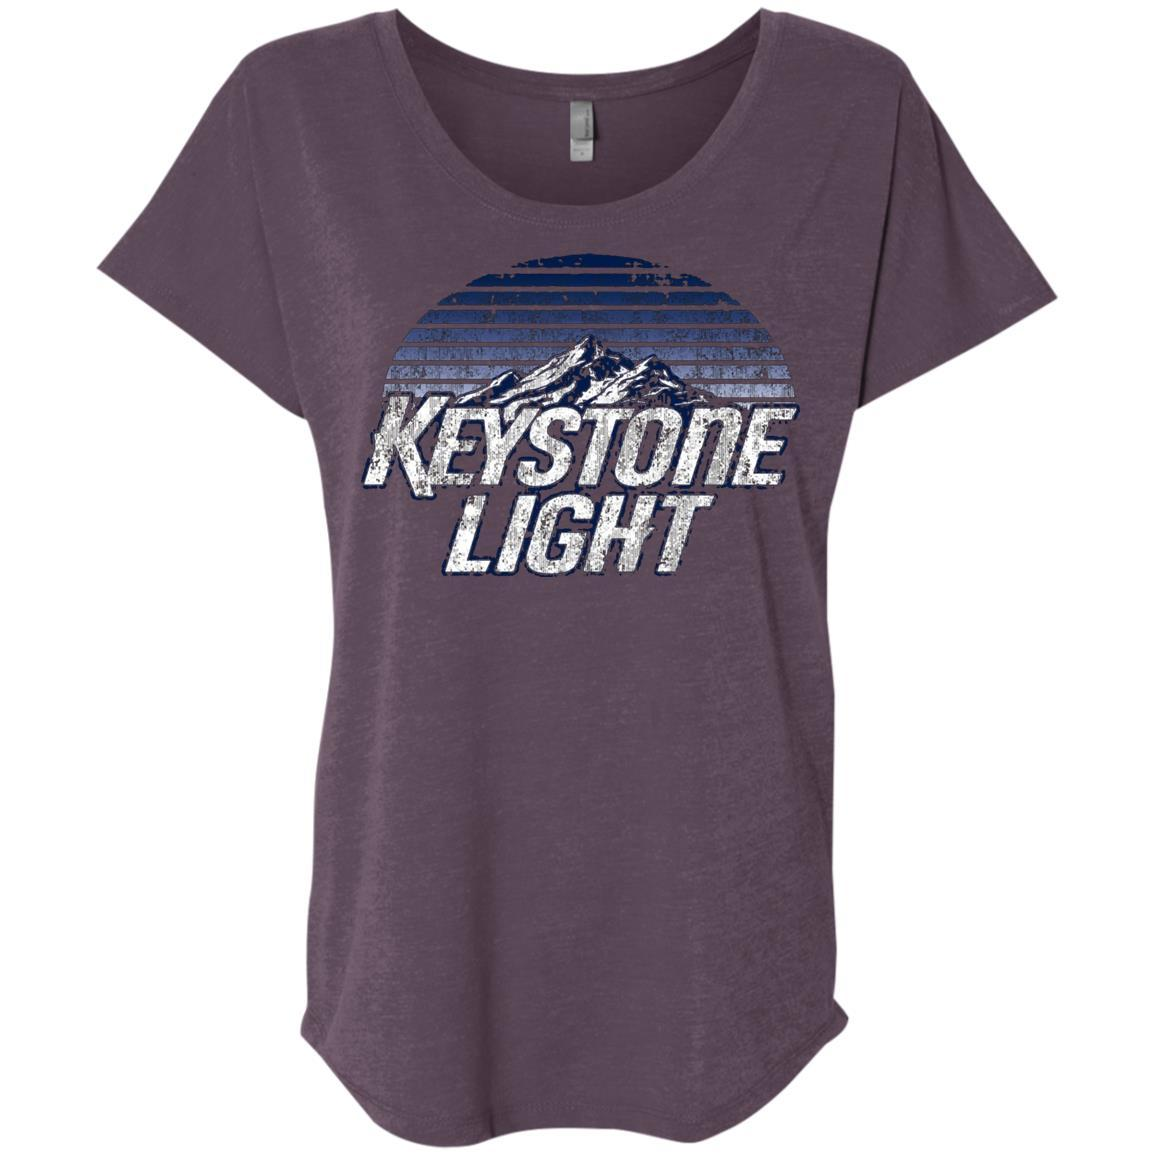 Keystone Light Beer Classic Look - Ladies' Triblend Dolman Sleeve Style / Color / Size